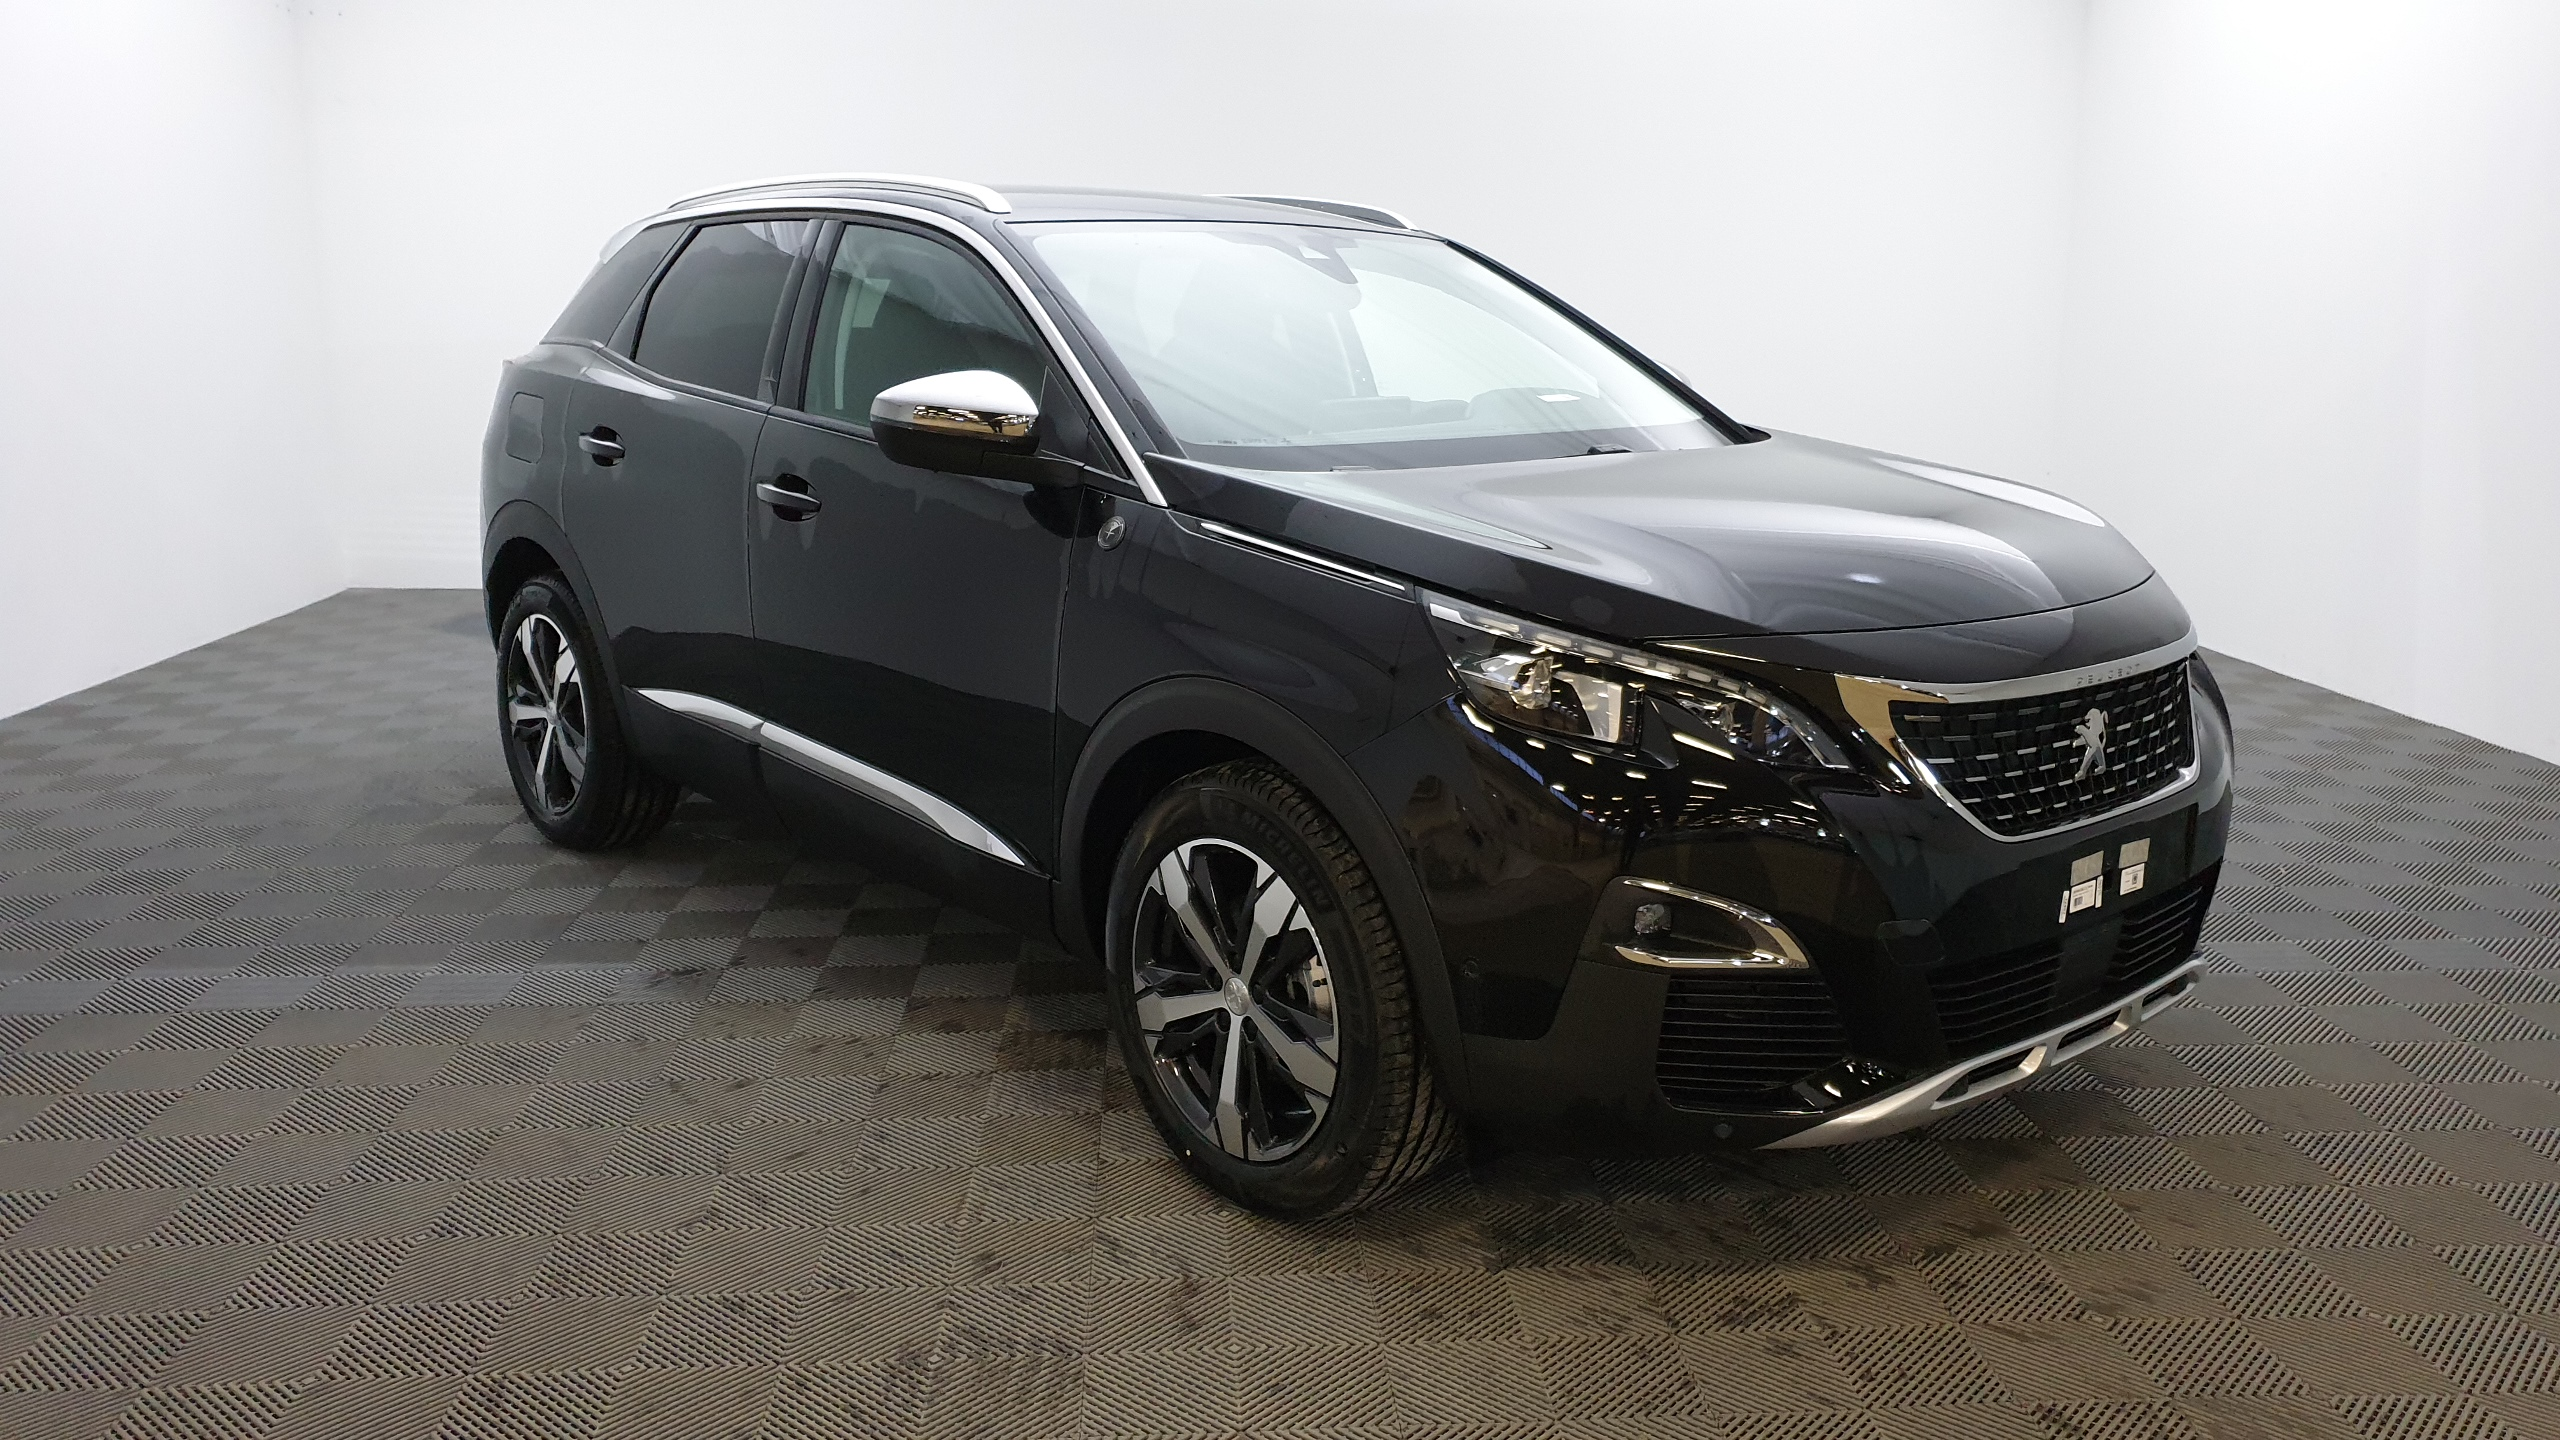 Photo PEUGEOT 3008 1.2 PURETECH 130CV BVM6 CROSSWAY + HAYON MAINS LIBRES + FULL LED